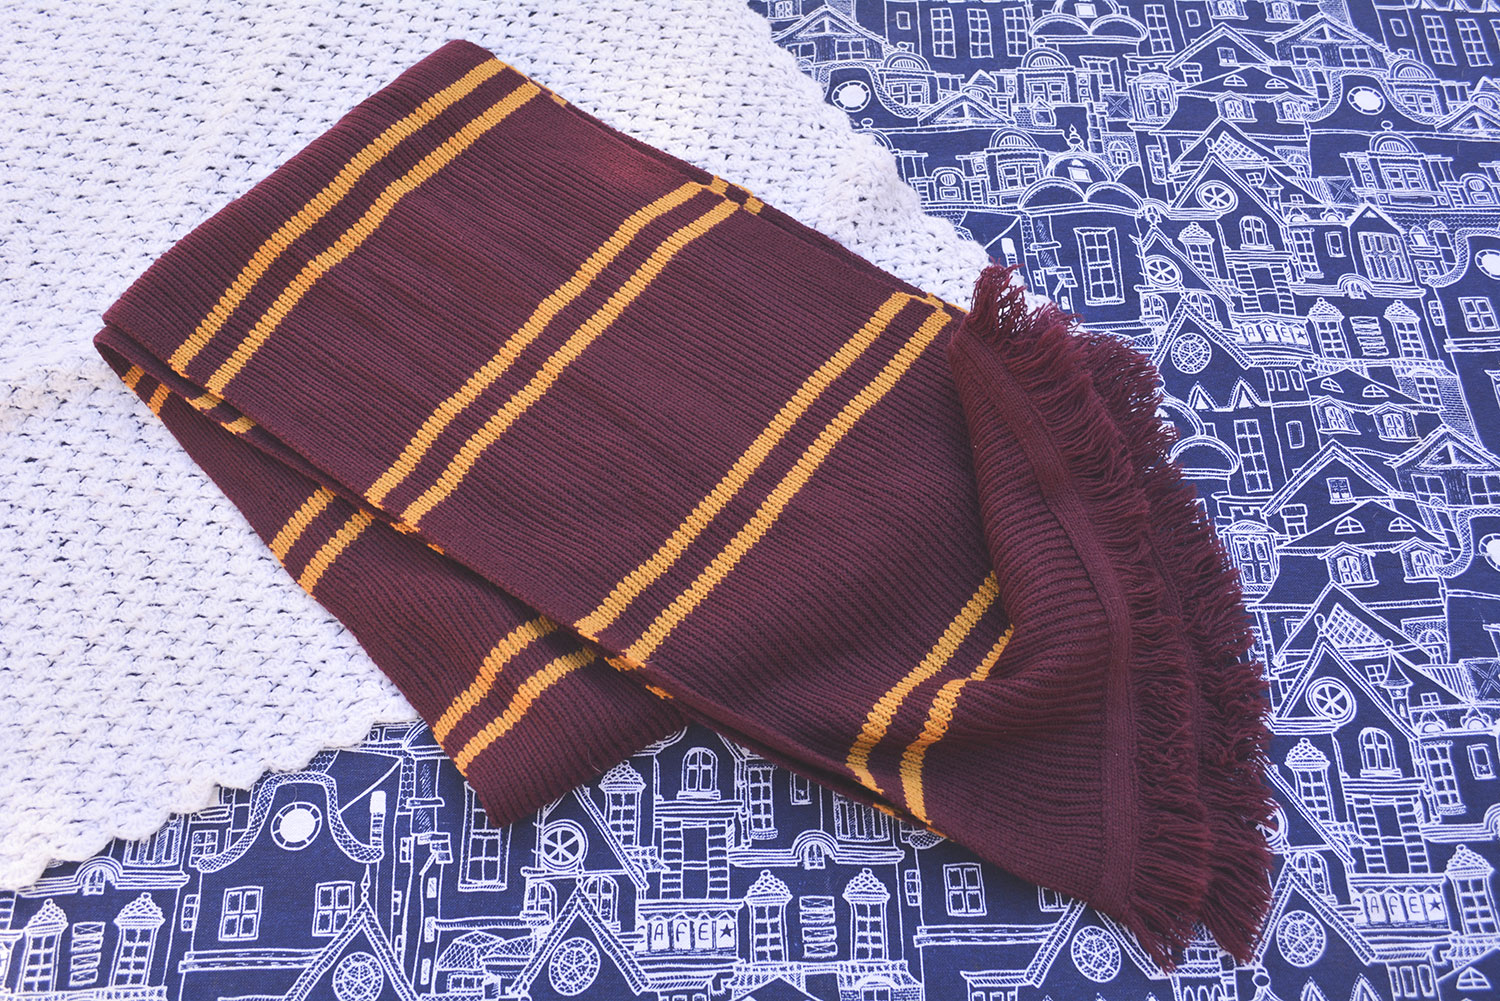 fashion, fashionista, moda, blogger argentina, fashion blogger, fashion blogger argentina, blogger, lifestyle blogger, shopping, shopping haul, harry potter, potterhead, harry potter shop, harry potter haul, harry potter merchandising